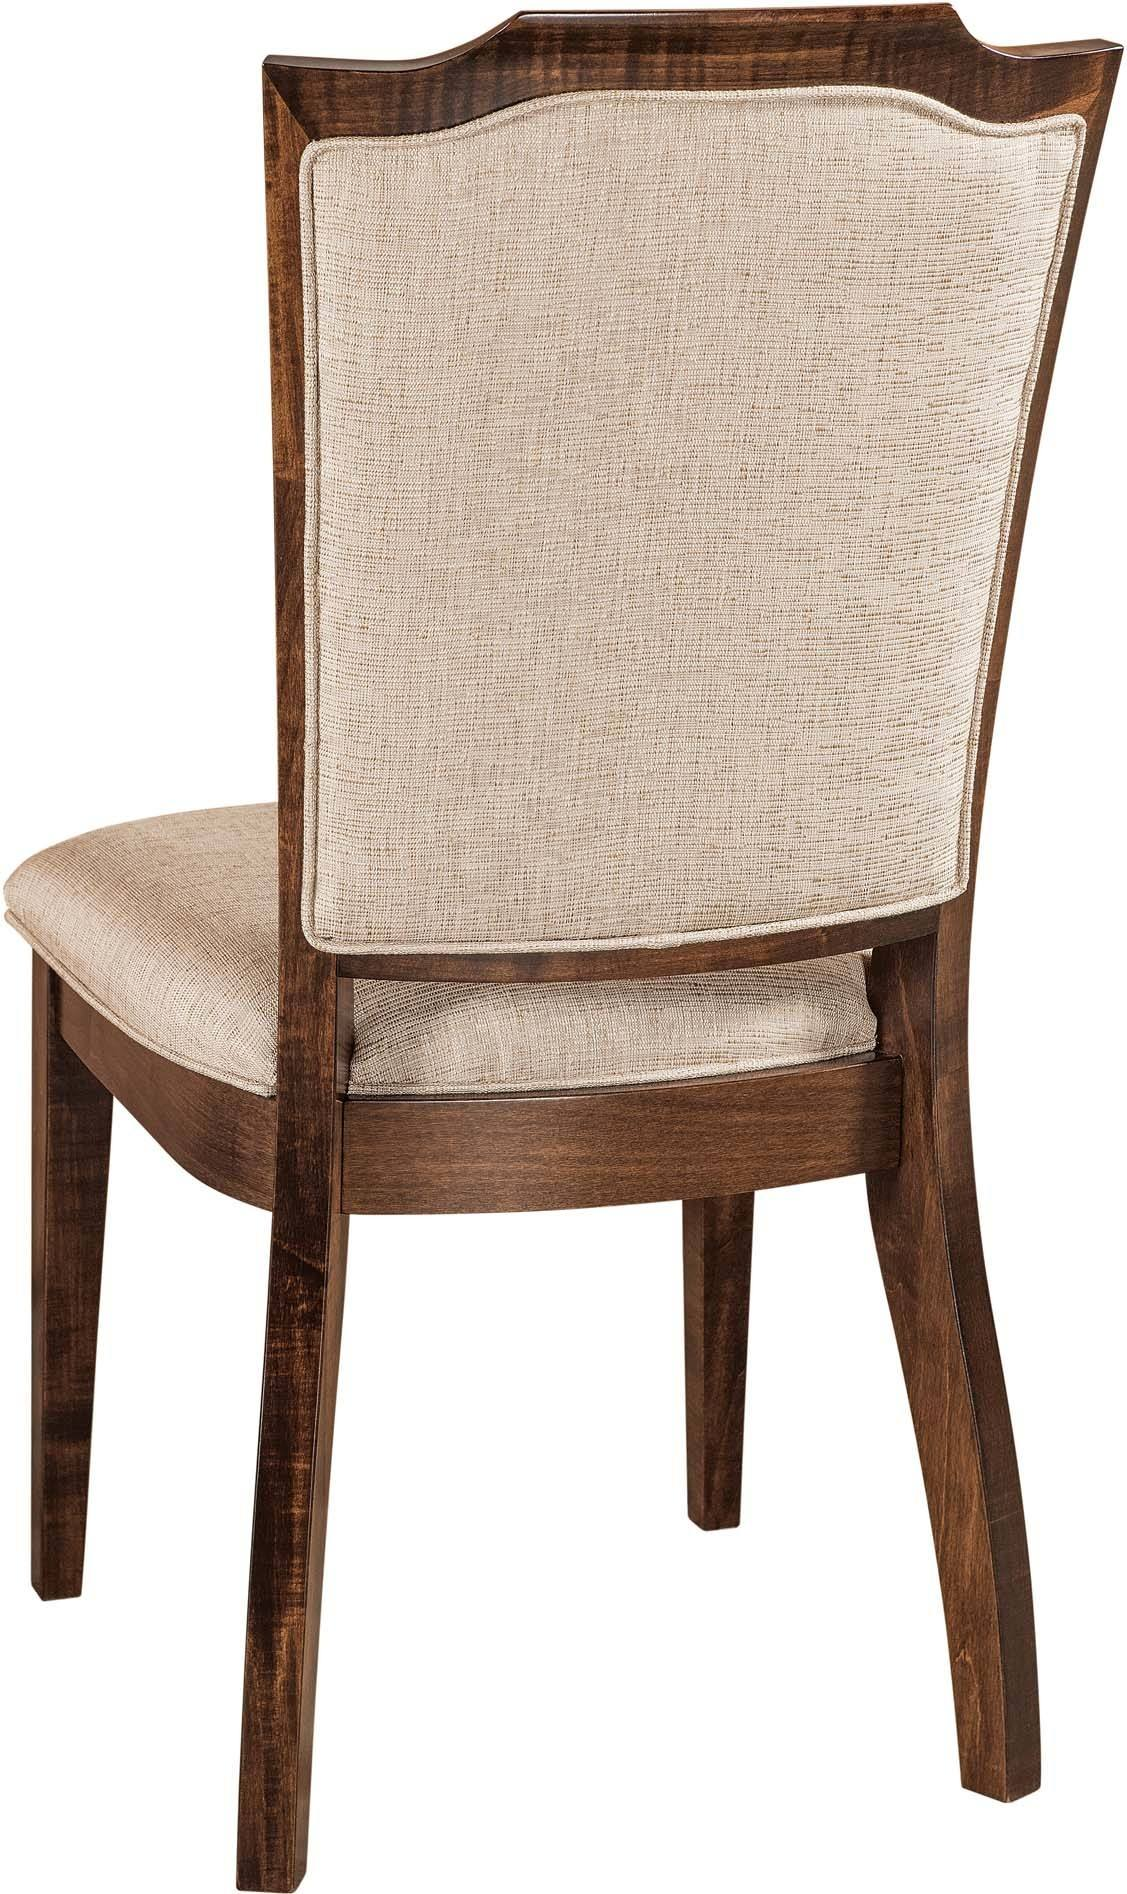 palmer-chair-back-det Palmer Home Collection Dining Room Furniture on palmer house bedroom furniture, the palmer home collection furniture, palmer home furnishings,